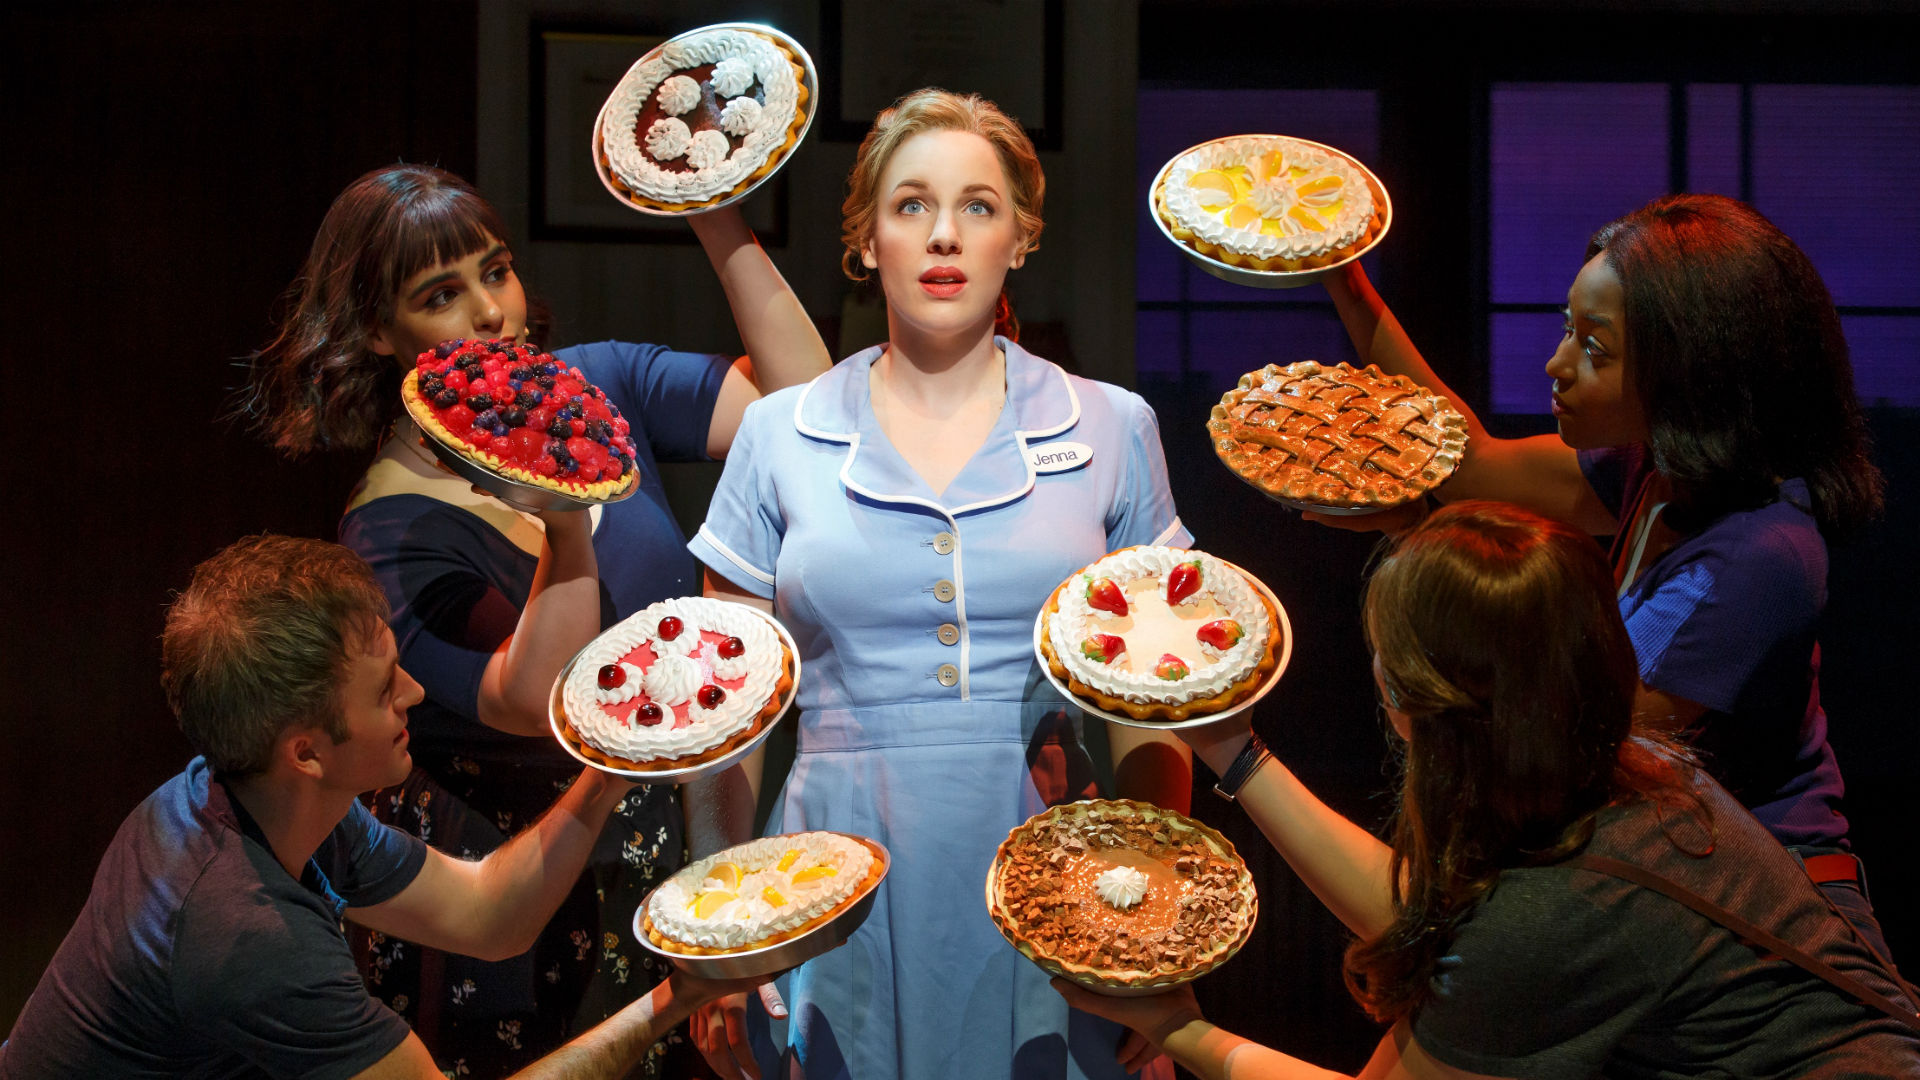 Jenna, a waitress and piemaker, is surrounded by four people holding a delicious variety of pies and cakes.